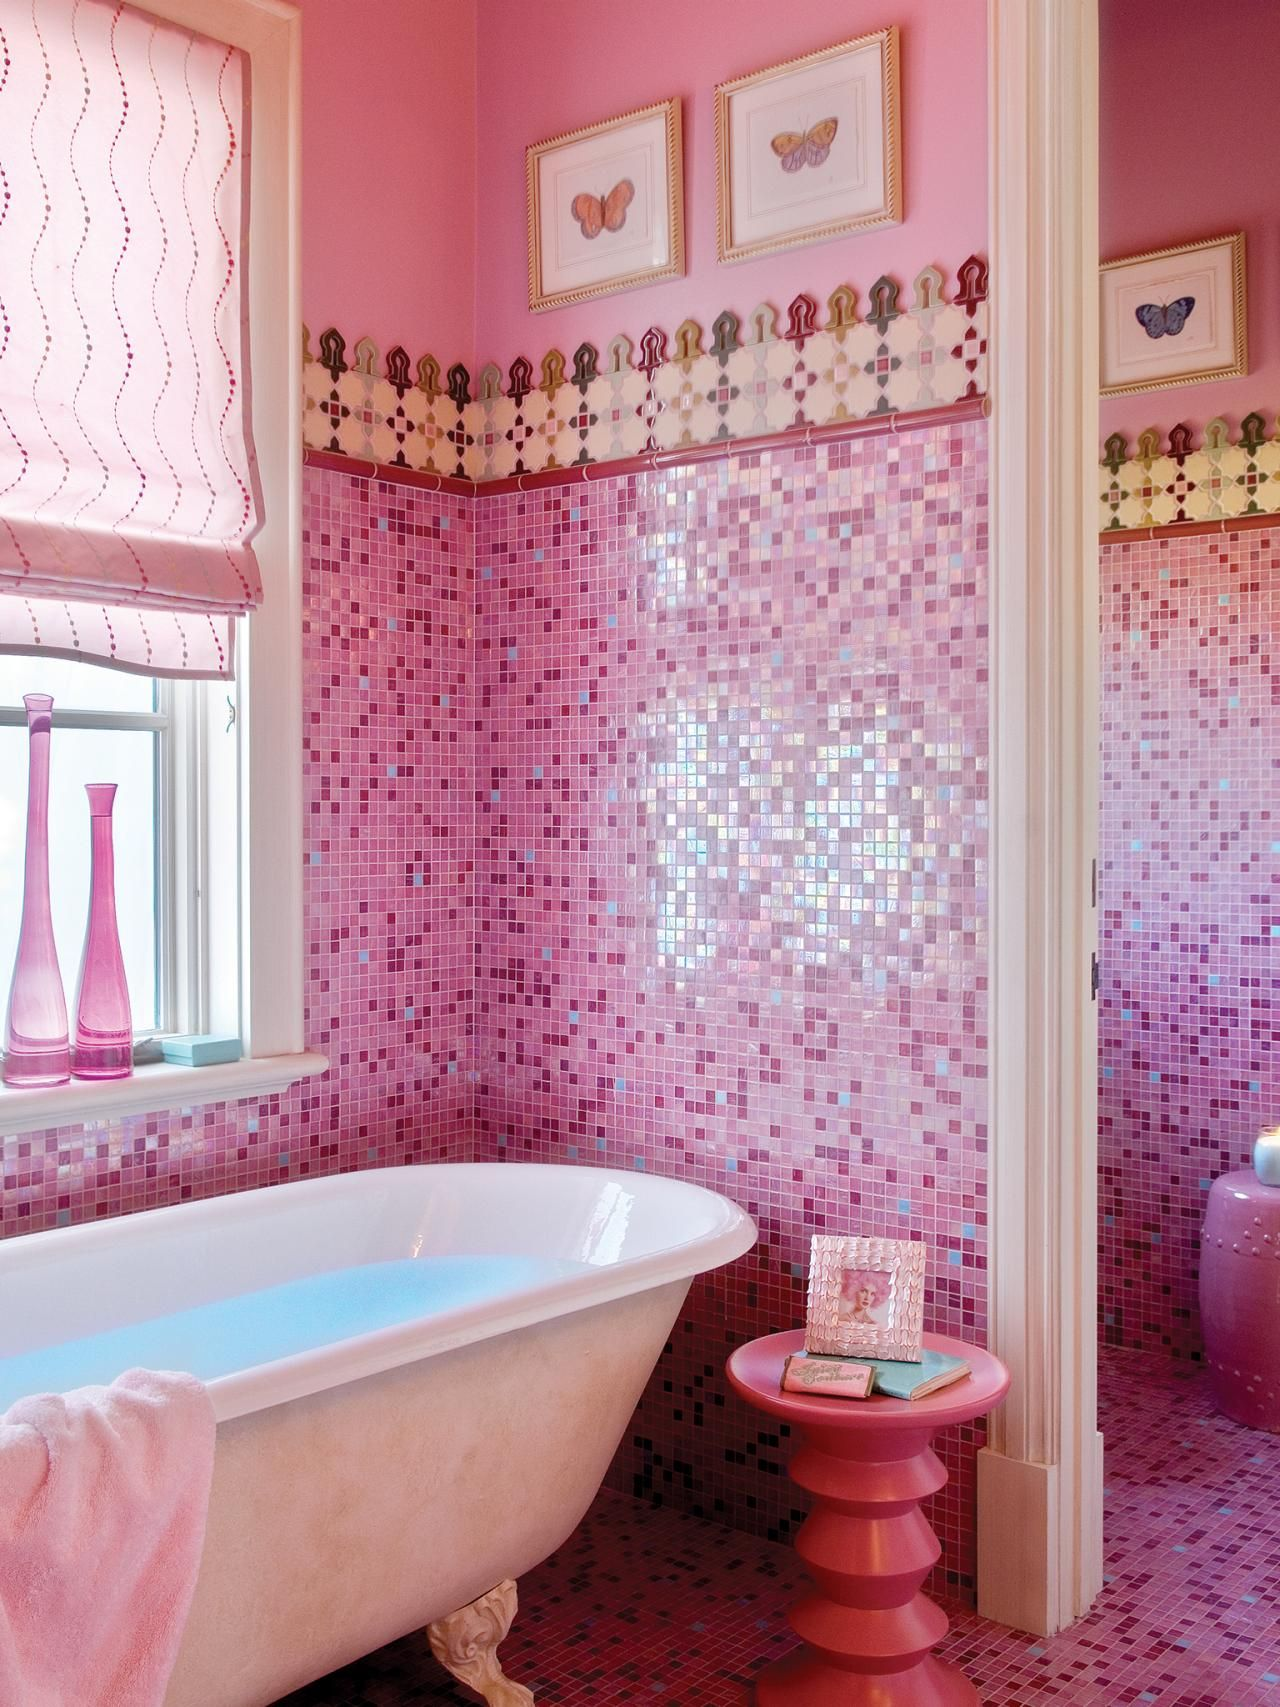 Teenage Bathroom Decor Bathroom Tiles For Every Budget And Design Style Mosaics Pink